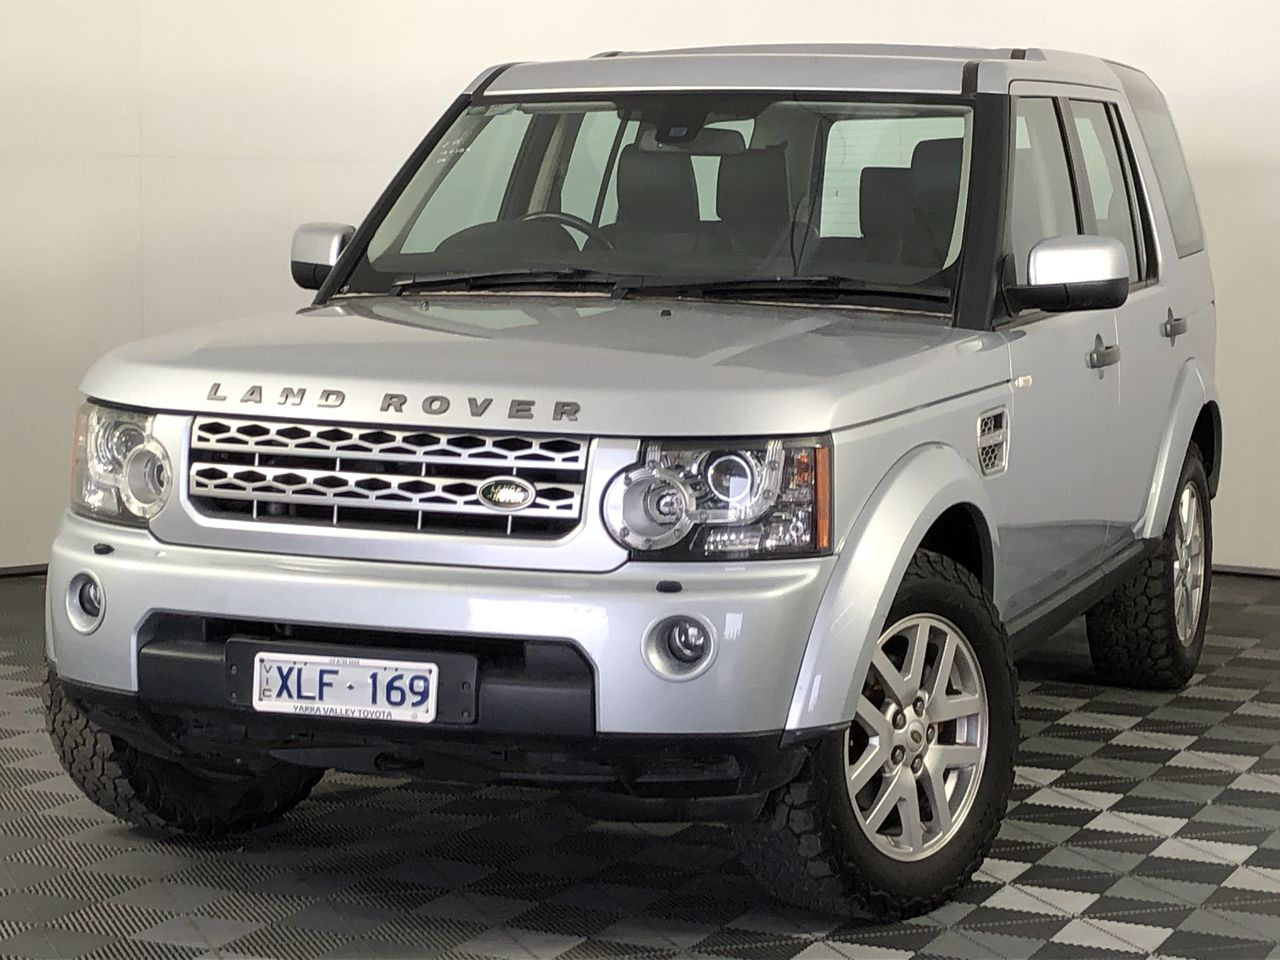 2009 Land Rover Discovery 4 2.7 TDV6 Series 4 T/D Automatic 7 Seats Wagon